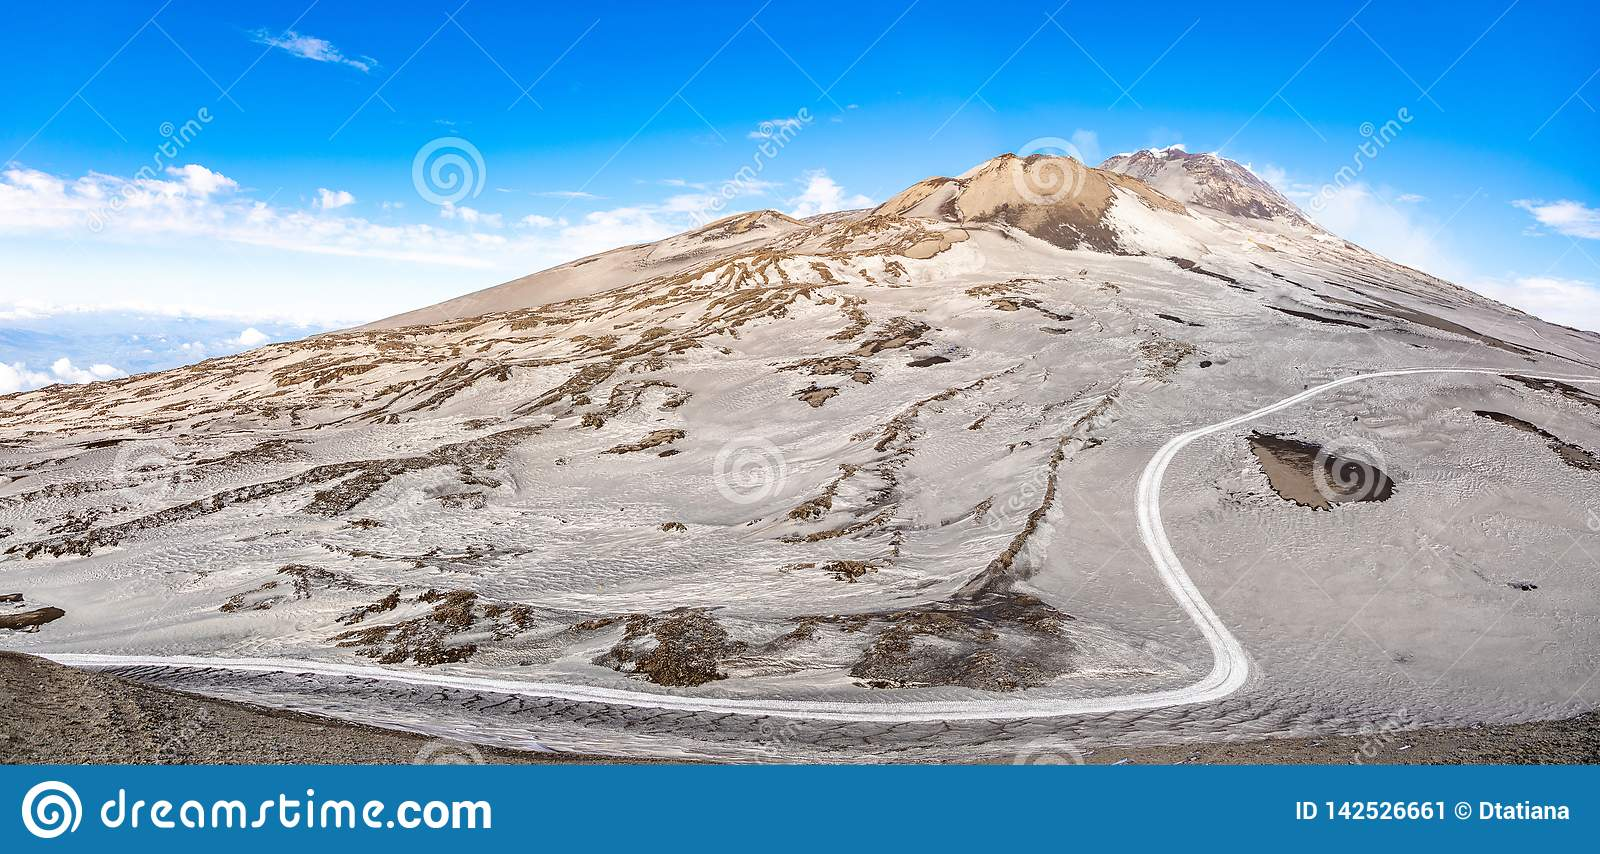 Footpath to Etna Volcano with smoke in winter, volcano landscape, Sicily island, Italy